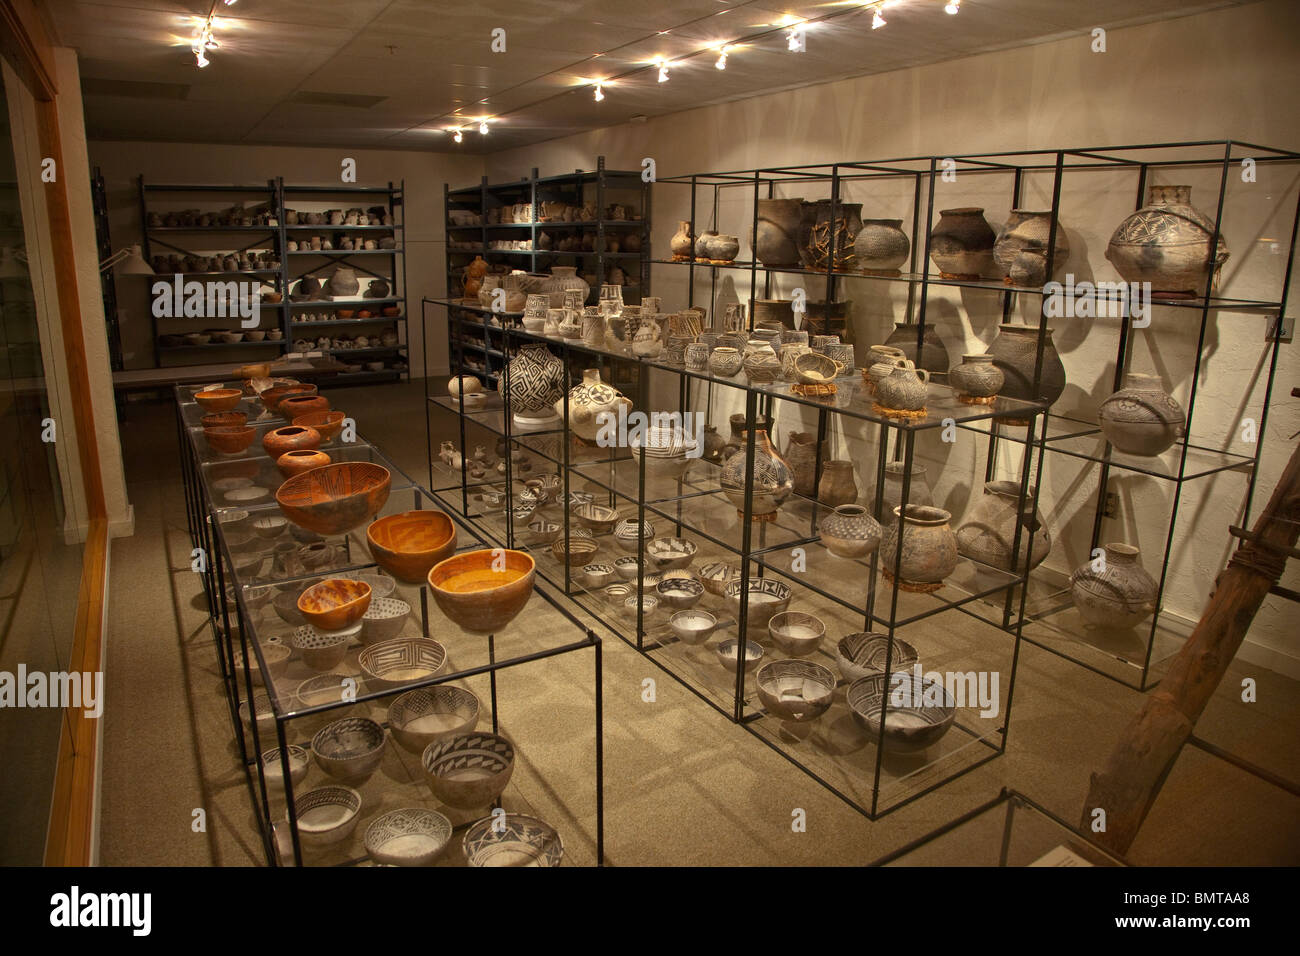 Pottery collection on display in museum at Edge of the Cedars State Park, Blanding, Utah, USA - Stock Image